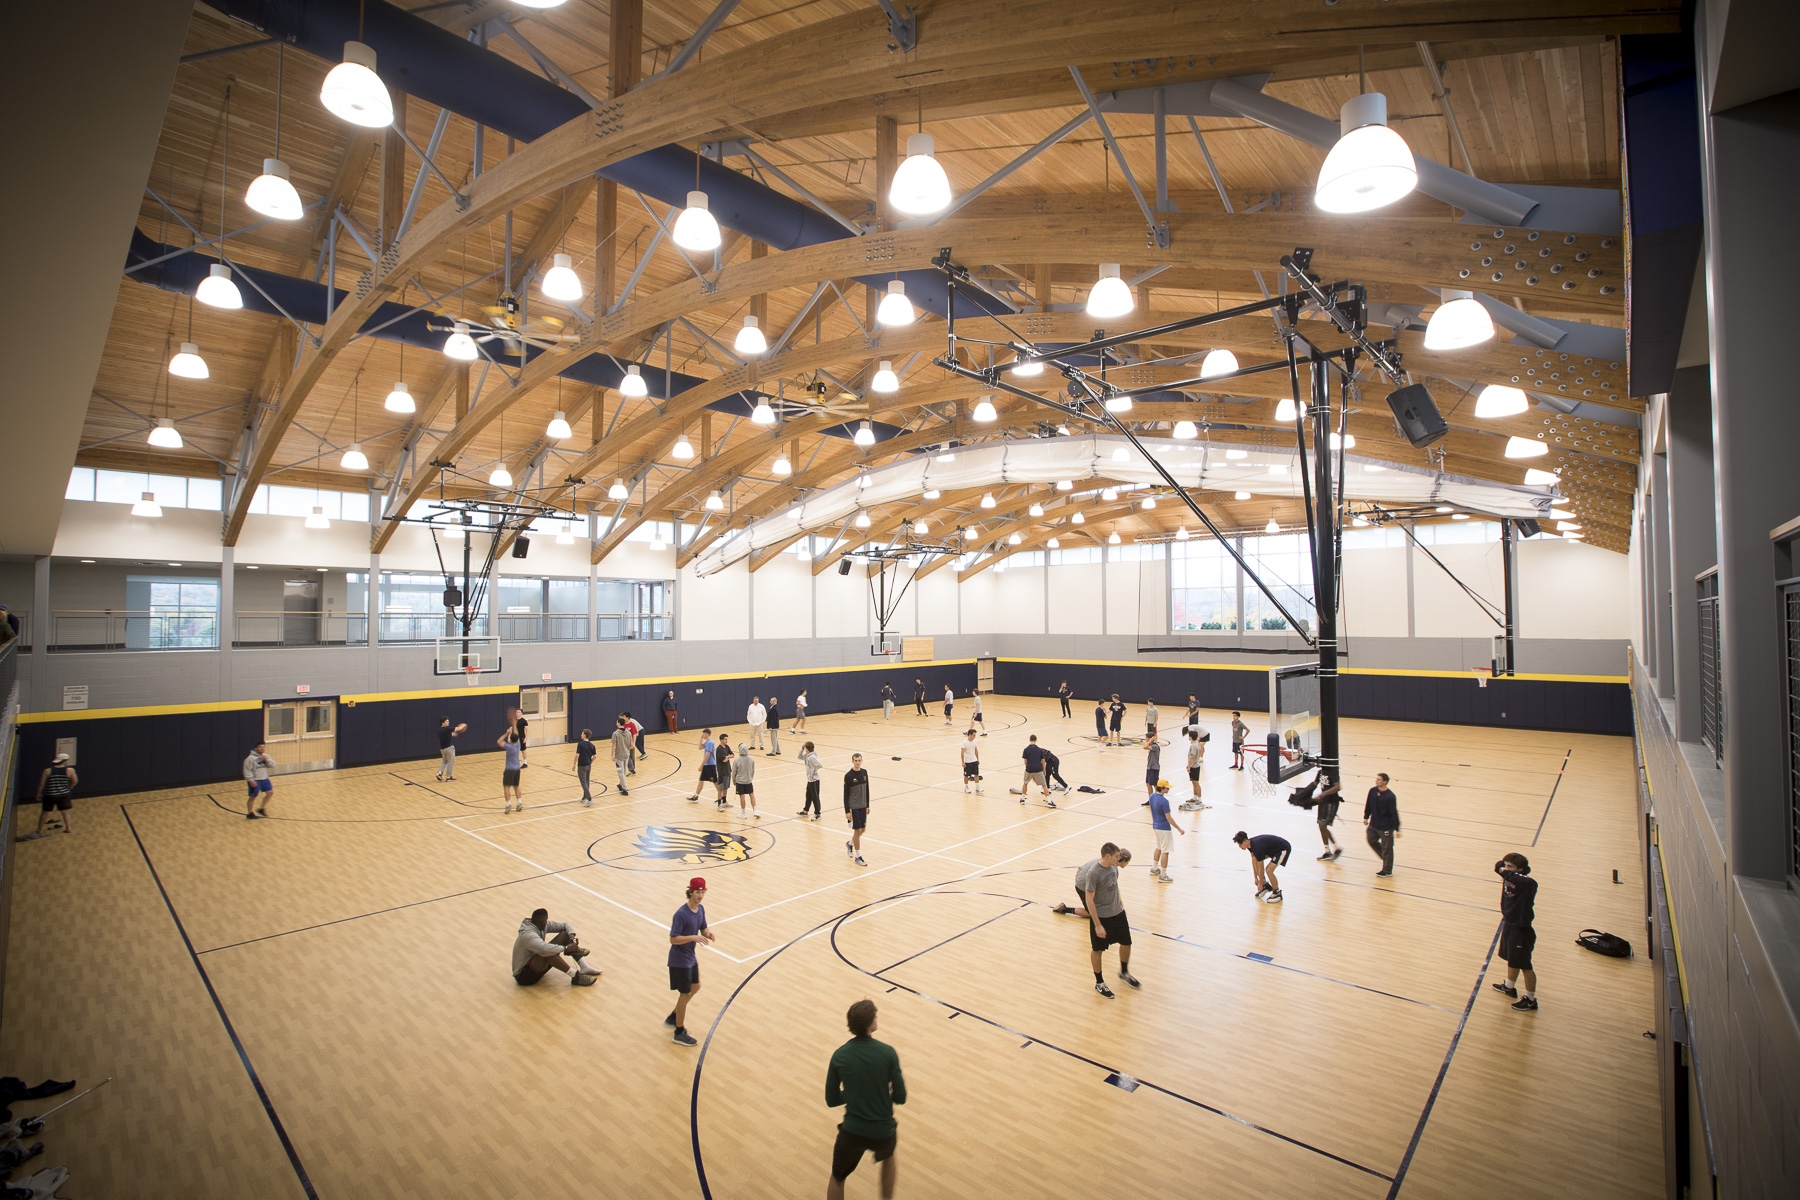 One Of The New Features Of The Smith Field House Includes The Cutting Edge  Software Installed In The Fields And Courts: Playsight Video And Analytics  ...